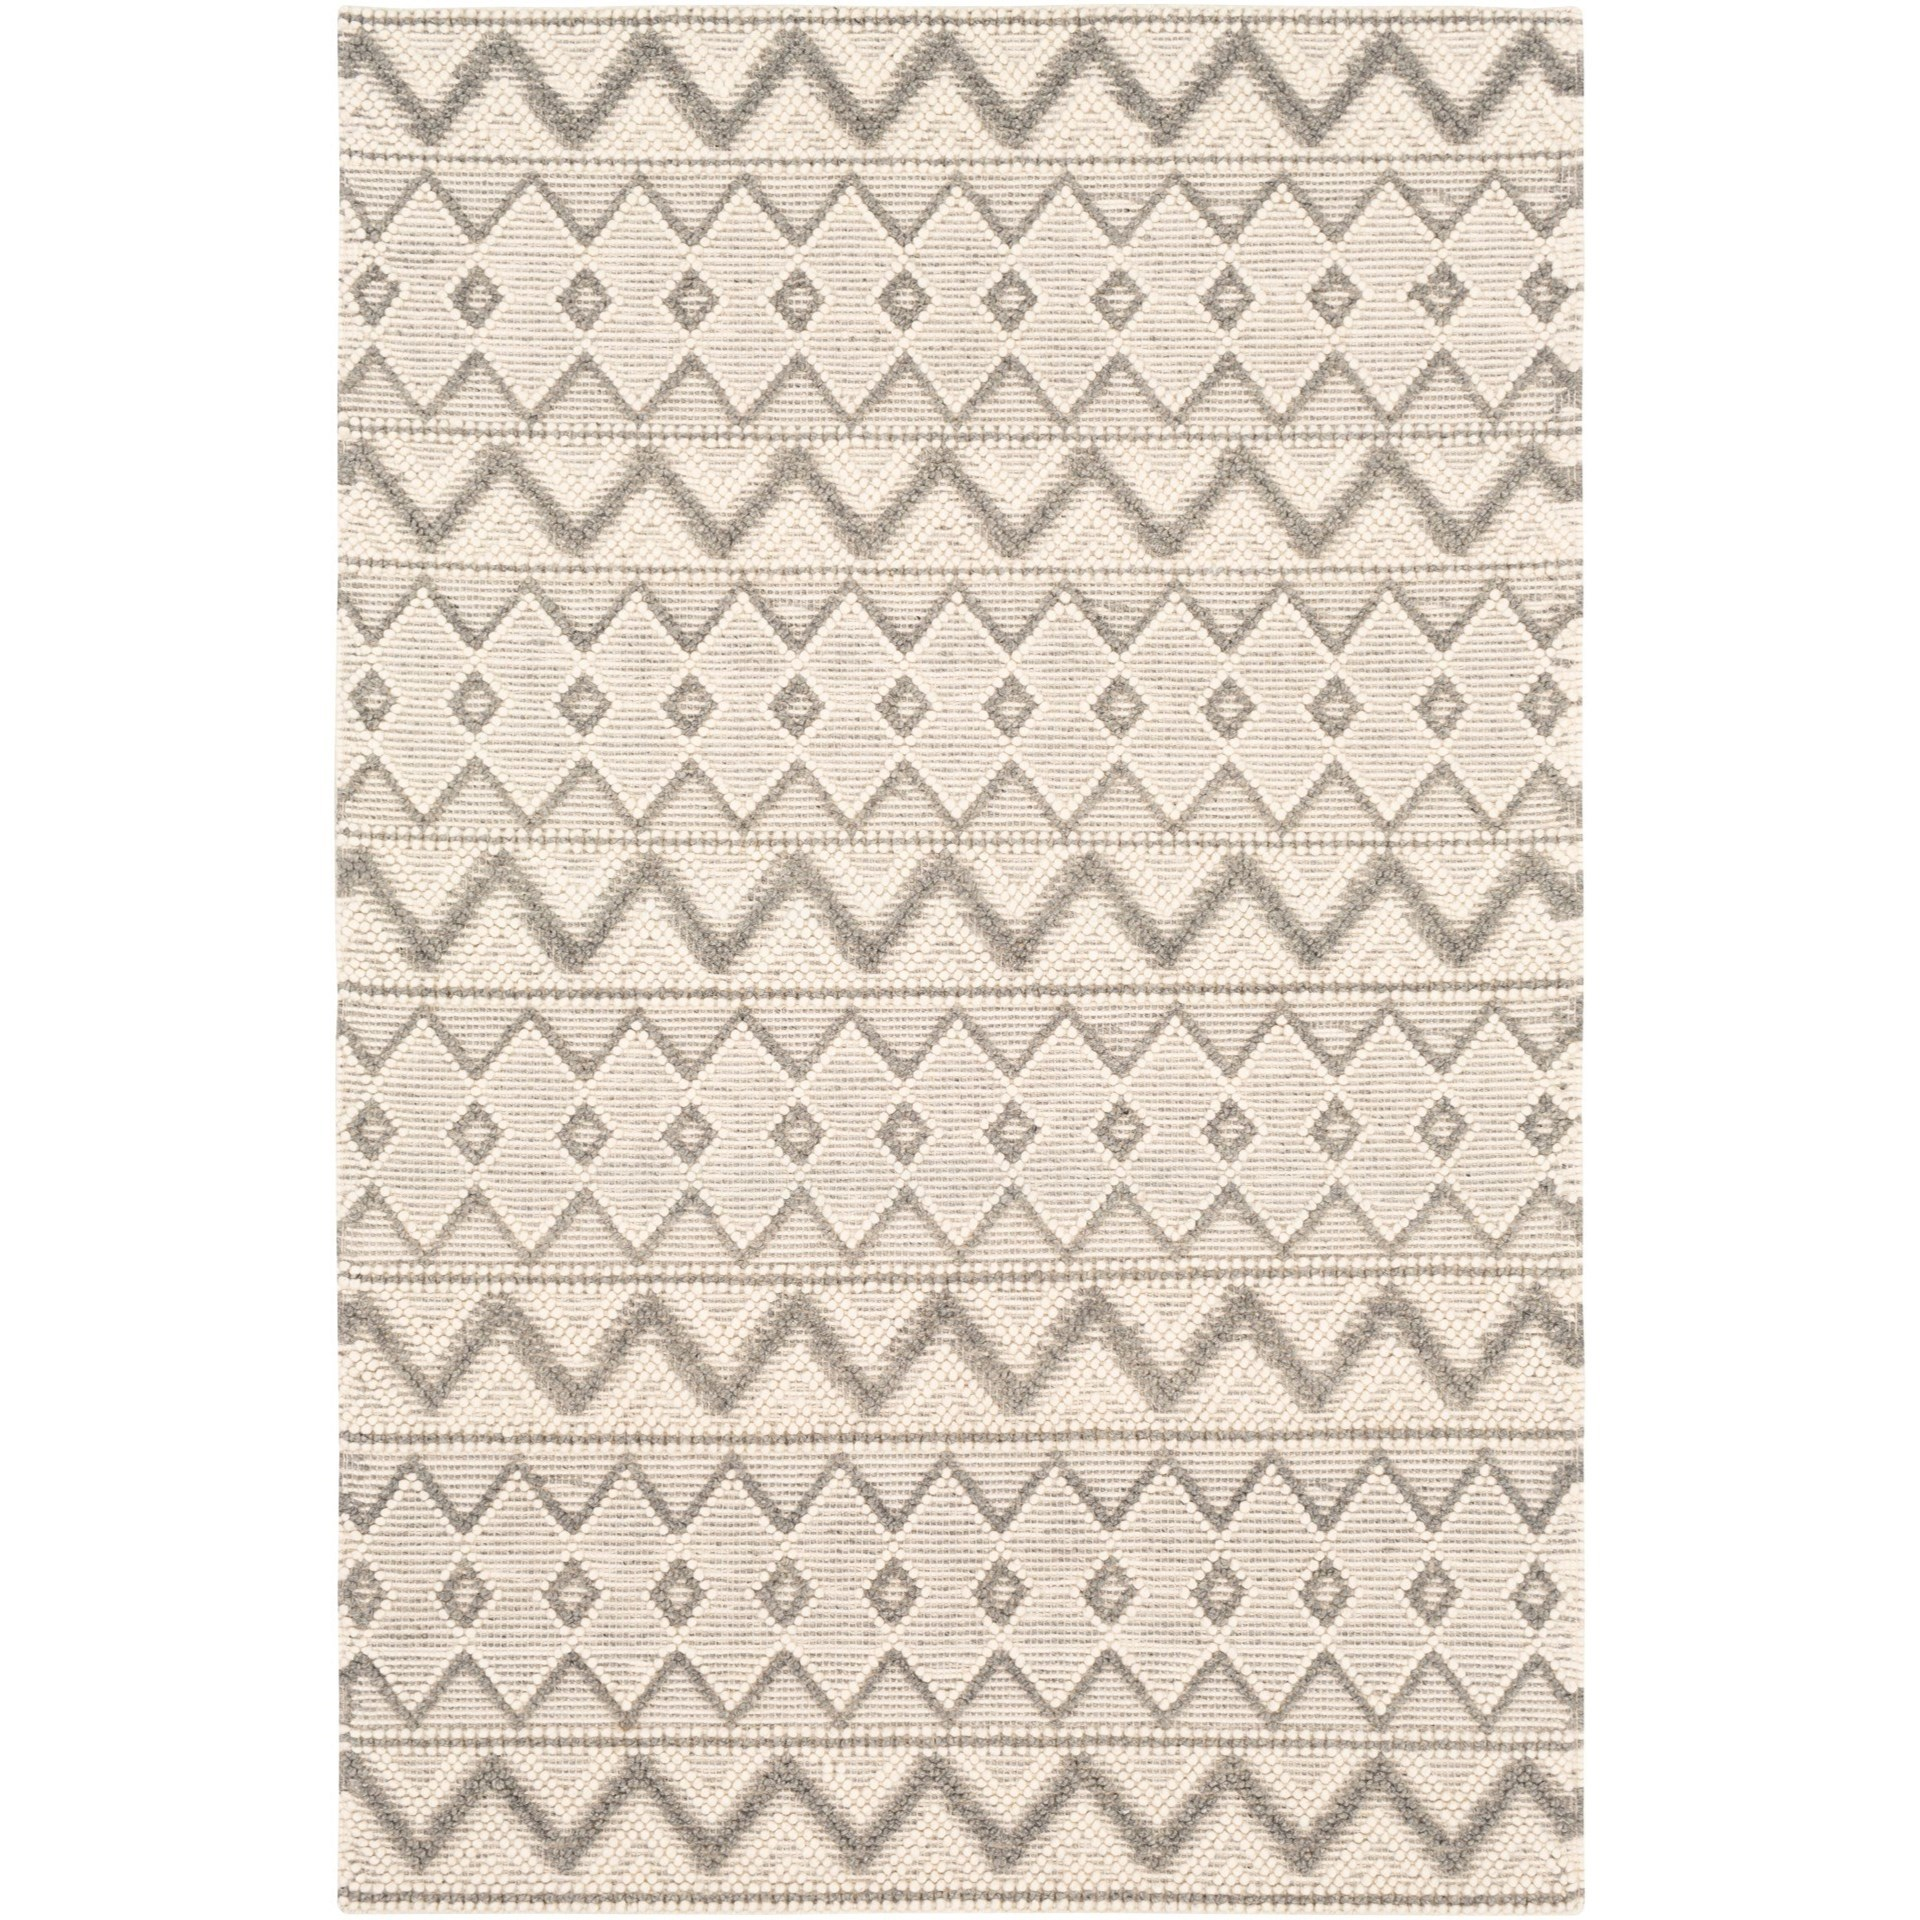 """Hygge 5' x 7'6"""" Rug by Surya at Morris Home"""